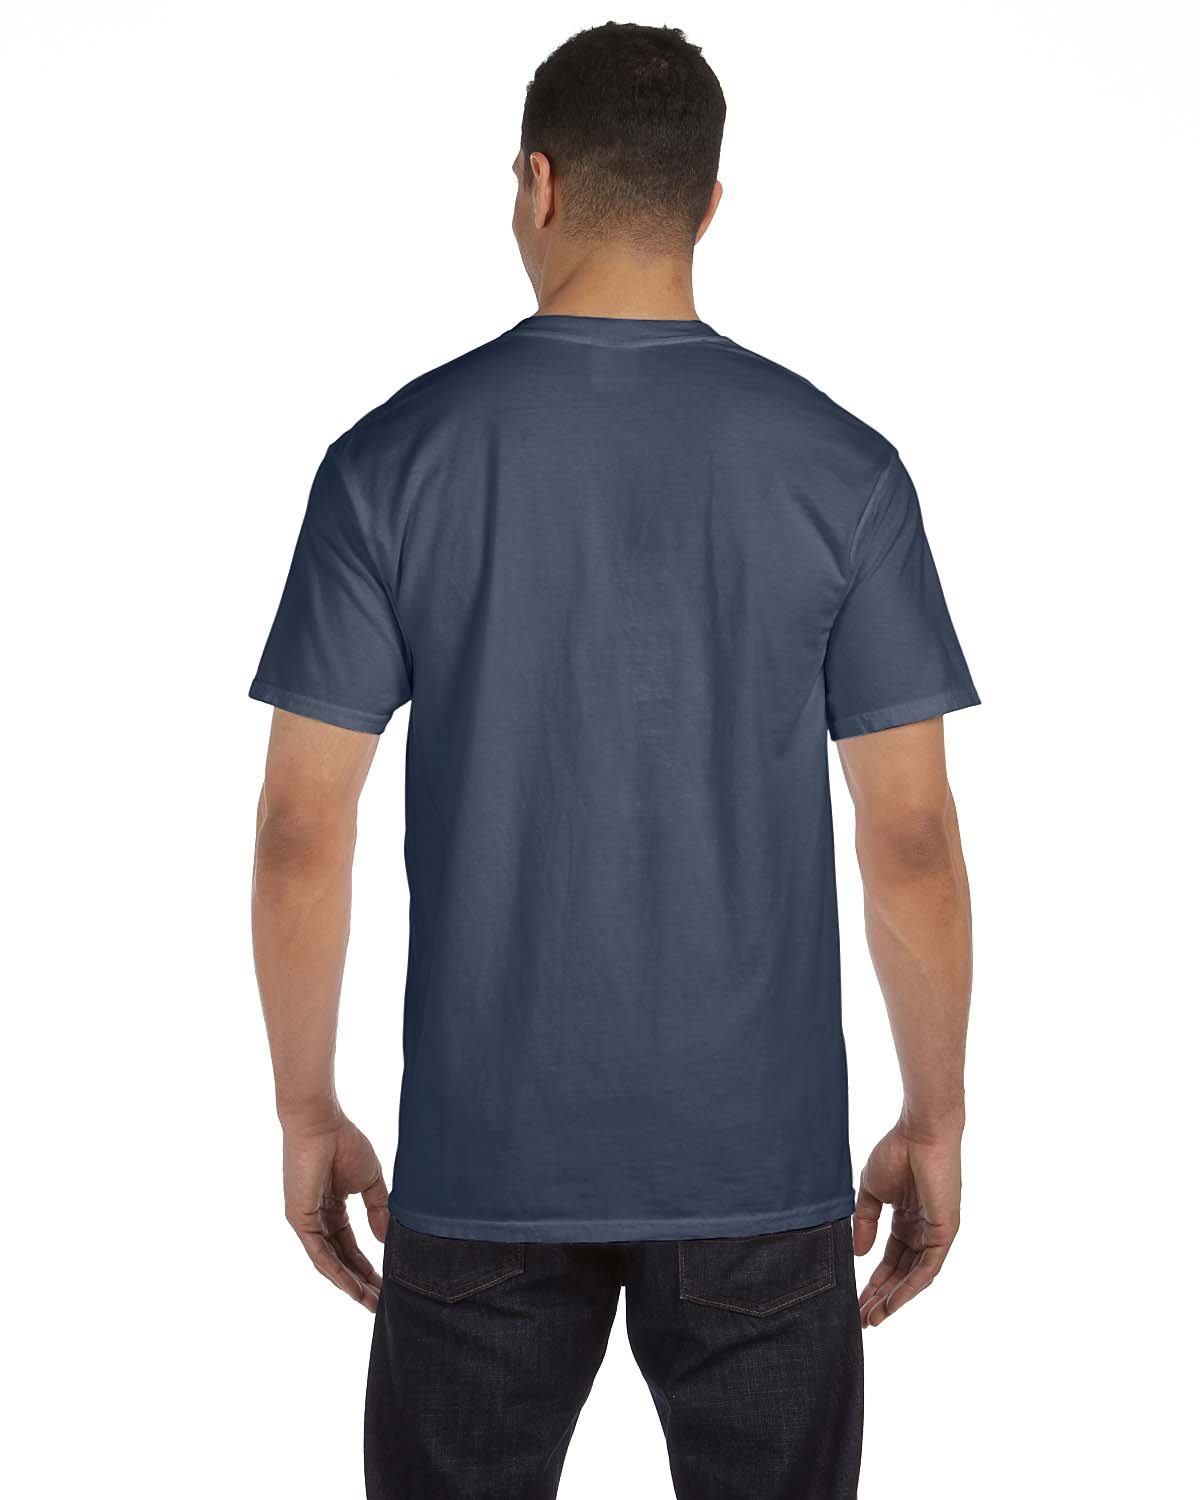 Comfort-Colors-Men-039-s-6-1-oz-Garment-Dyed-Pocket-T-Shirt-6030CC-S-3XL thumbnail 37